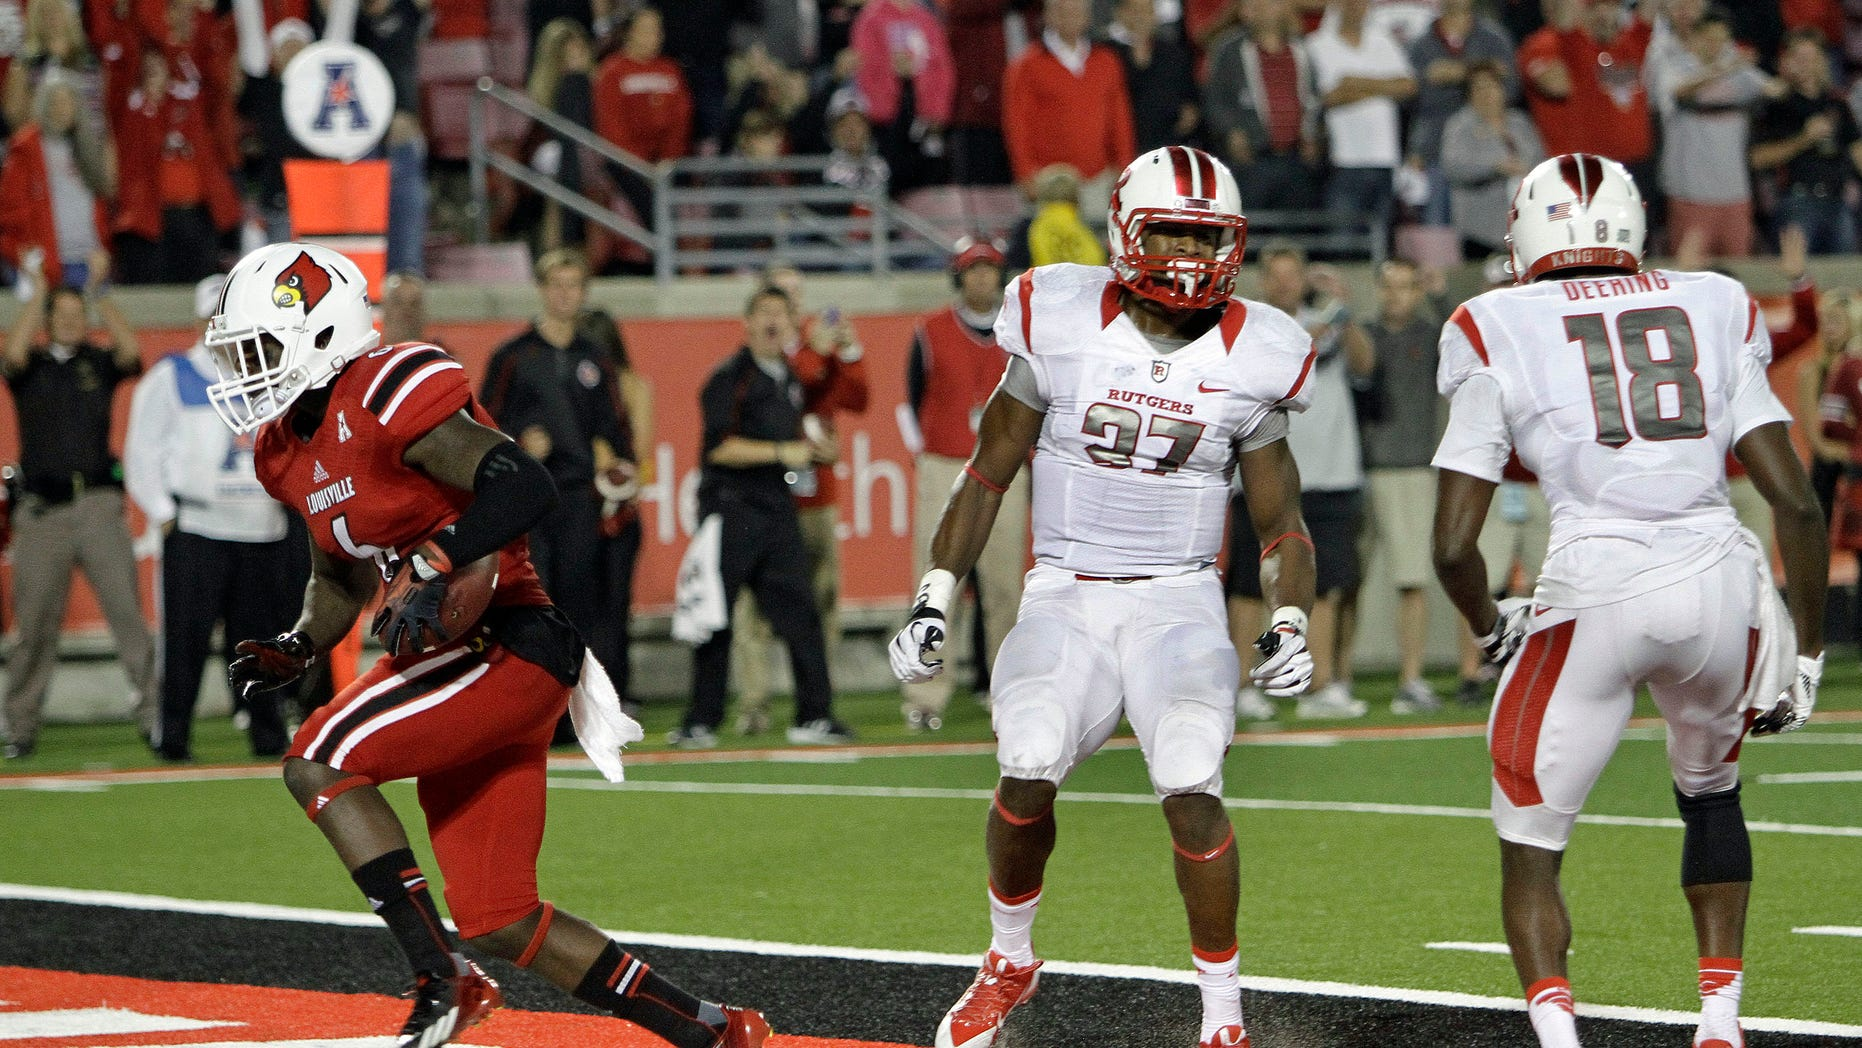 Louisville's Eli Rogers, left, splits Rutgers defenders Jamal Merrell (27) and Jeremy Deering (18) to score on a touchdown reception late in the fourth quarter in their NCAA college football game in Louisville, Ky., Thursday, Oct. 10, 2013. Louisville beat Rutgers 24-10.  (AP Photo/Garry Jones)